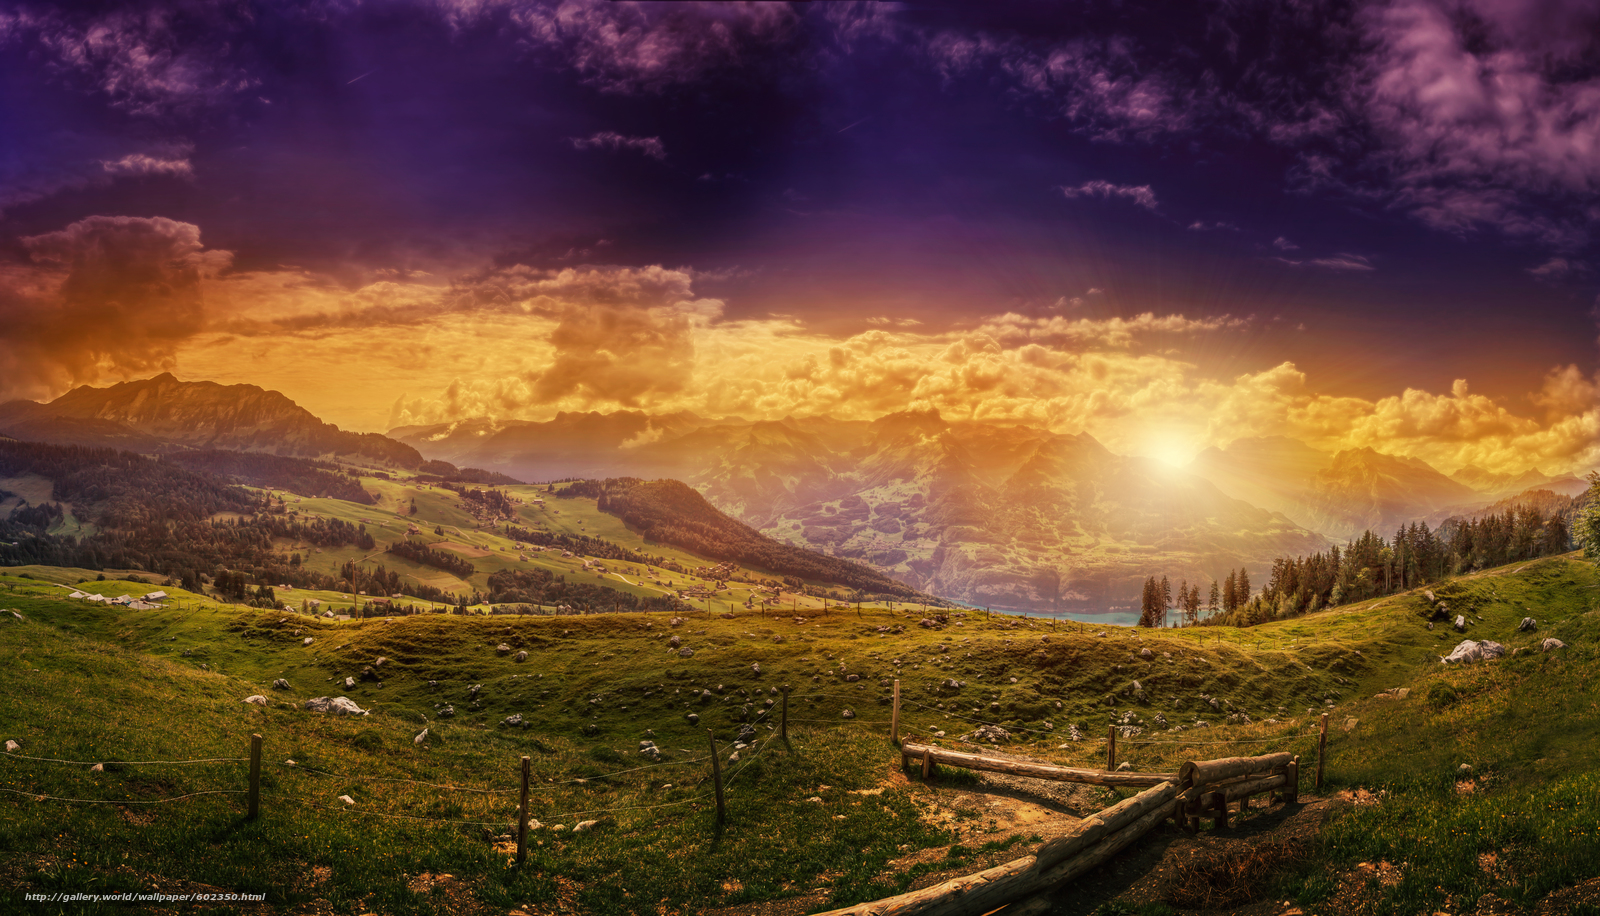 sunset, Mountains, Hills, lake, trees, landscape